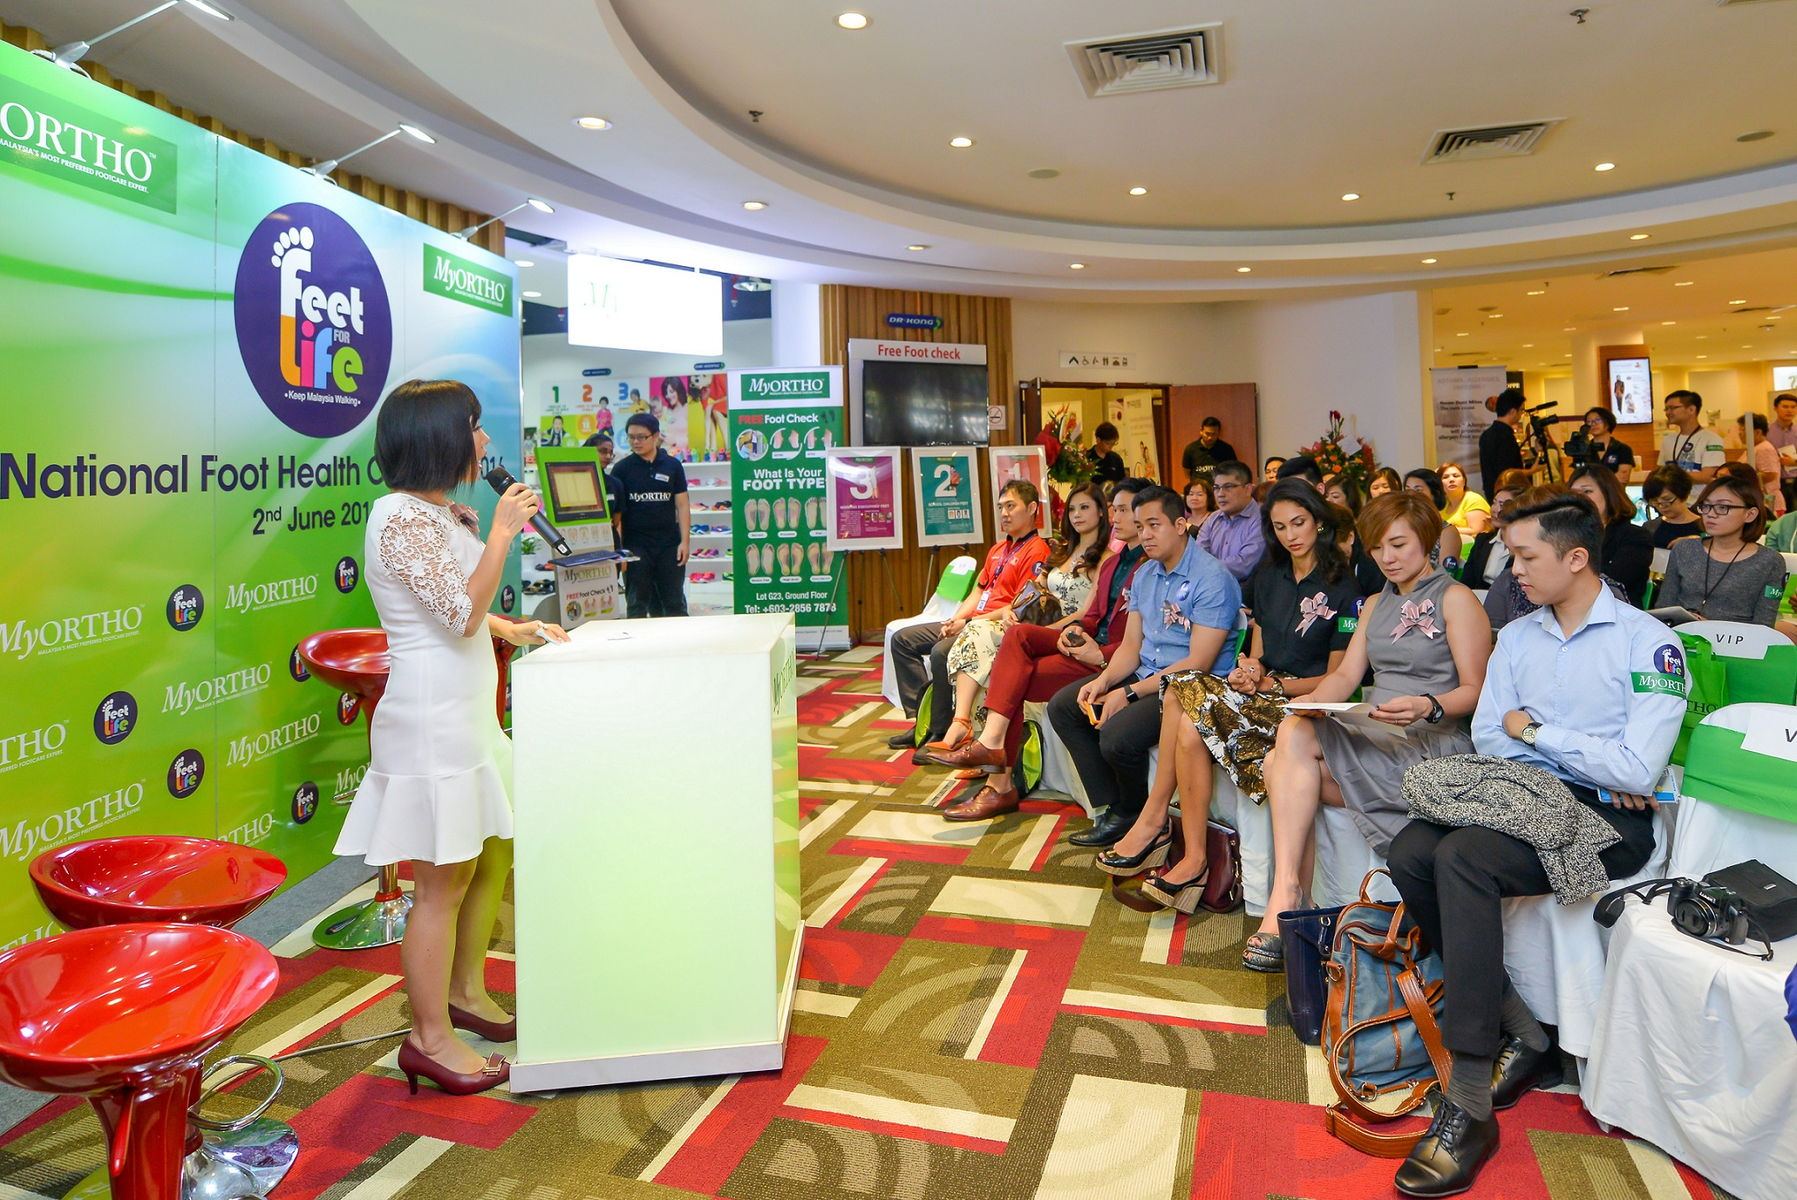 Datin Emily Lee explaining the evolution of foot health to the press members